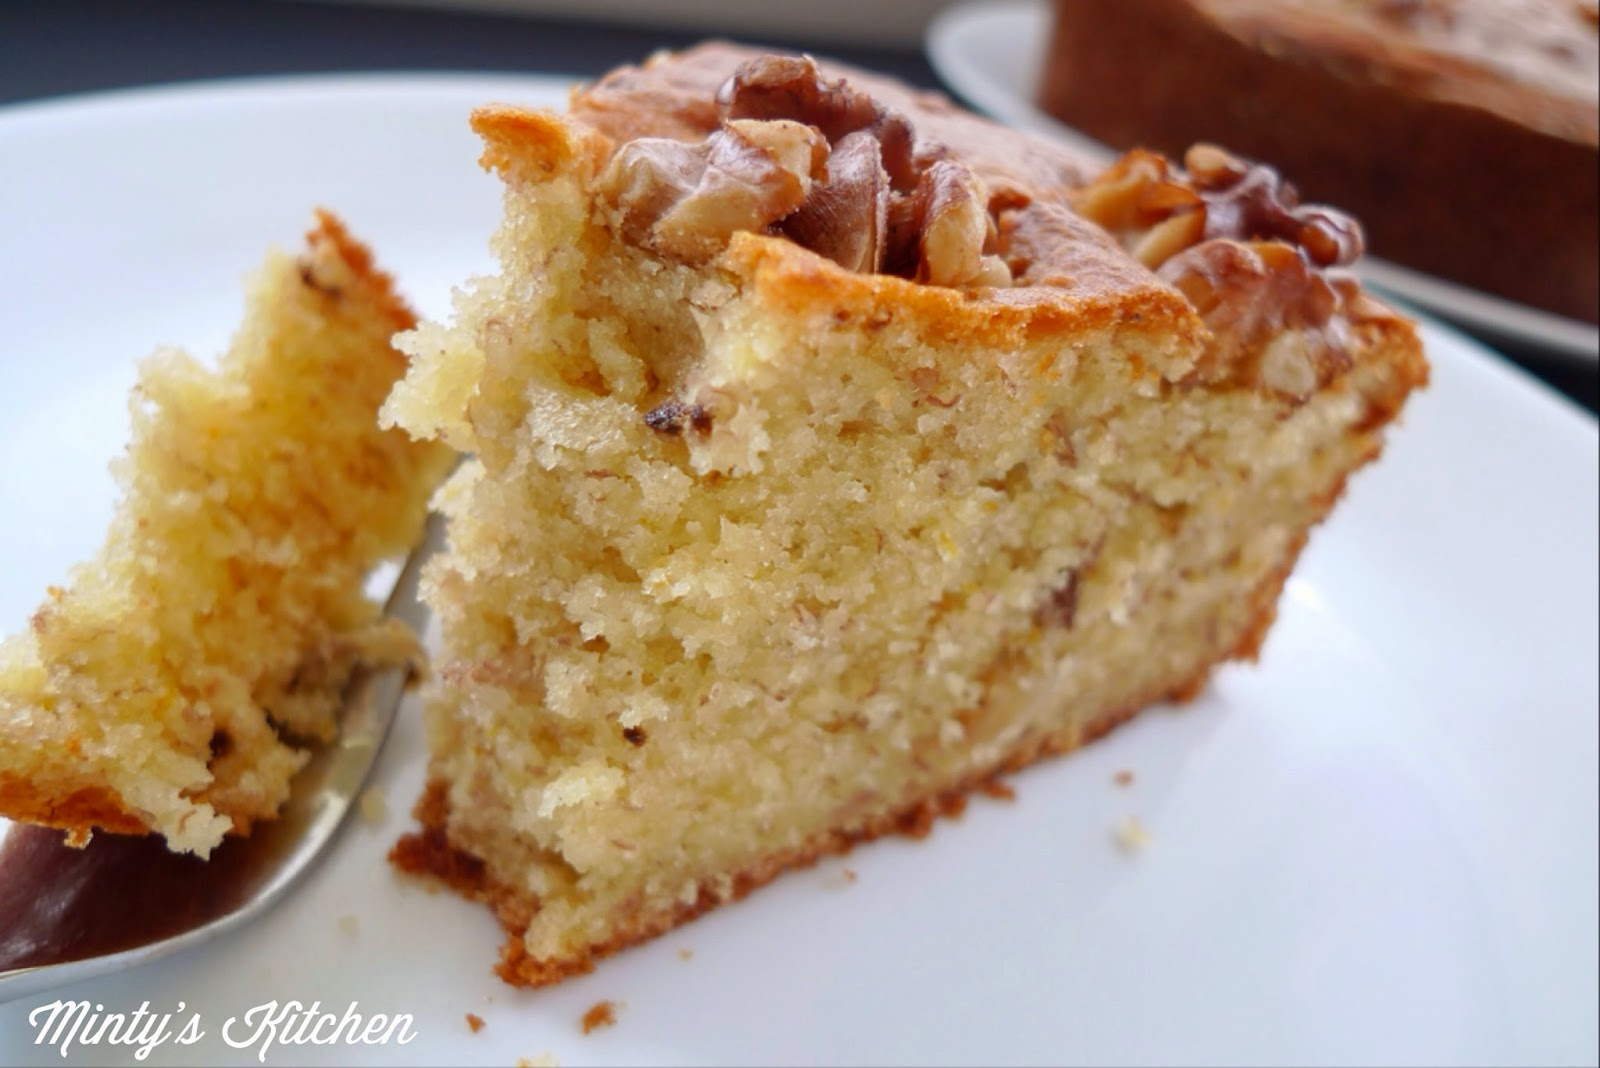 Moist Banana Walnut Cake